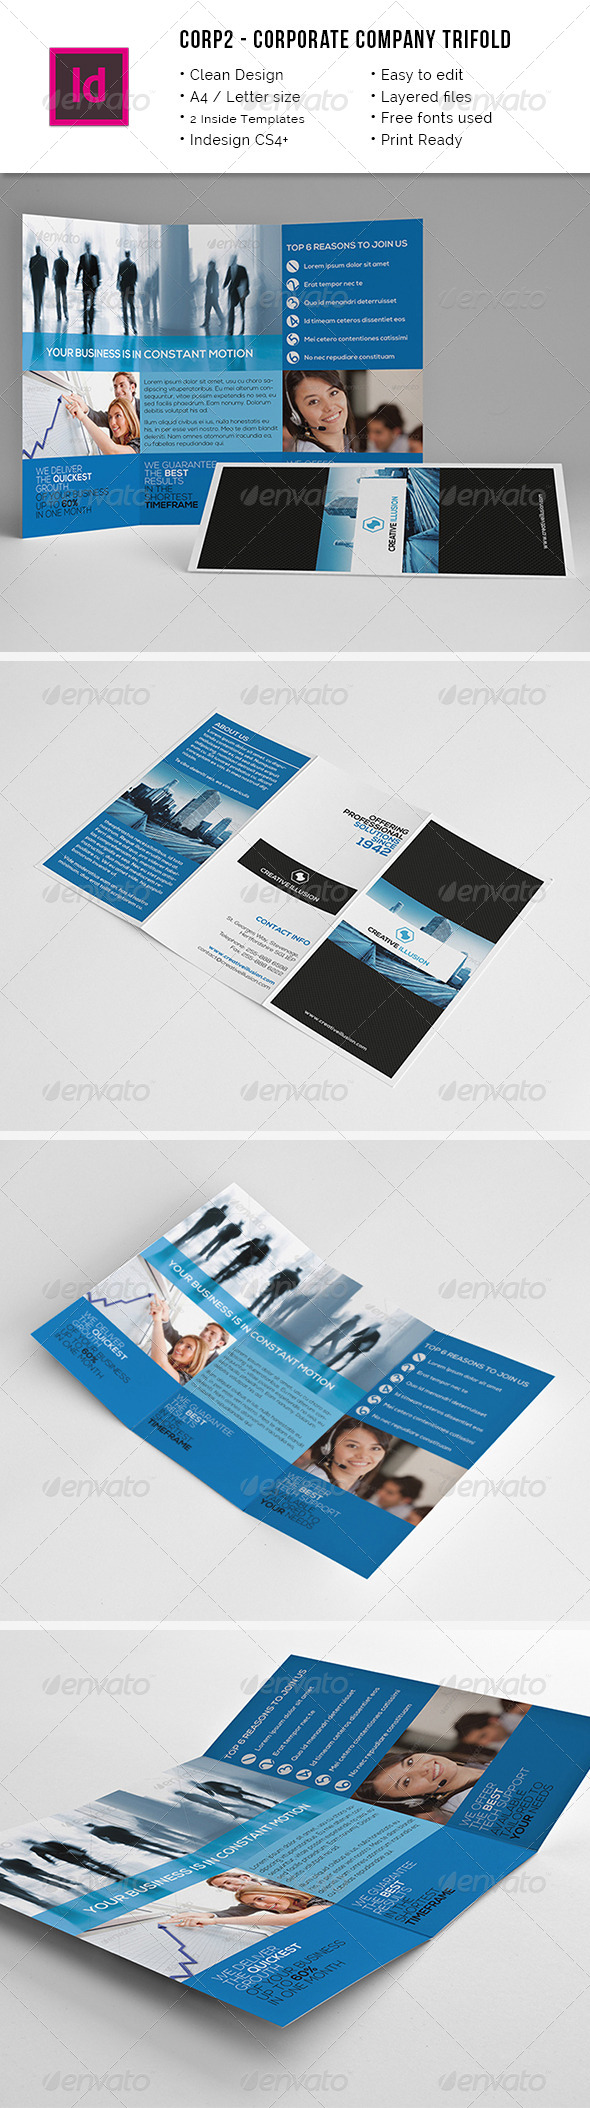 Clean Corporate A4 / Letter Trifold Brochure - Corporate Brochures